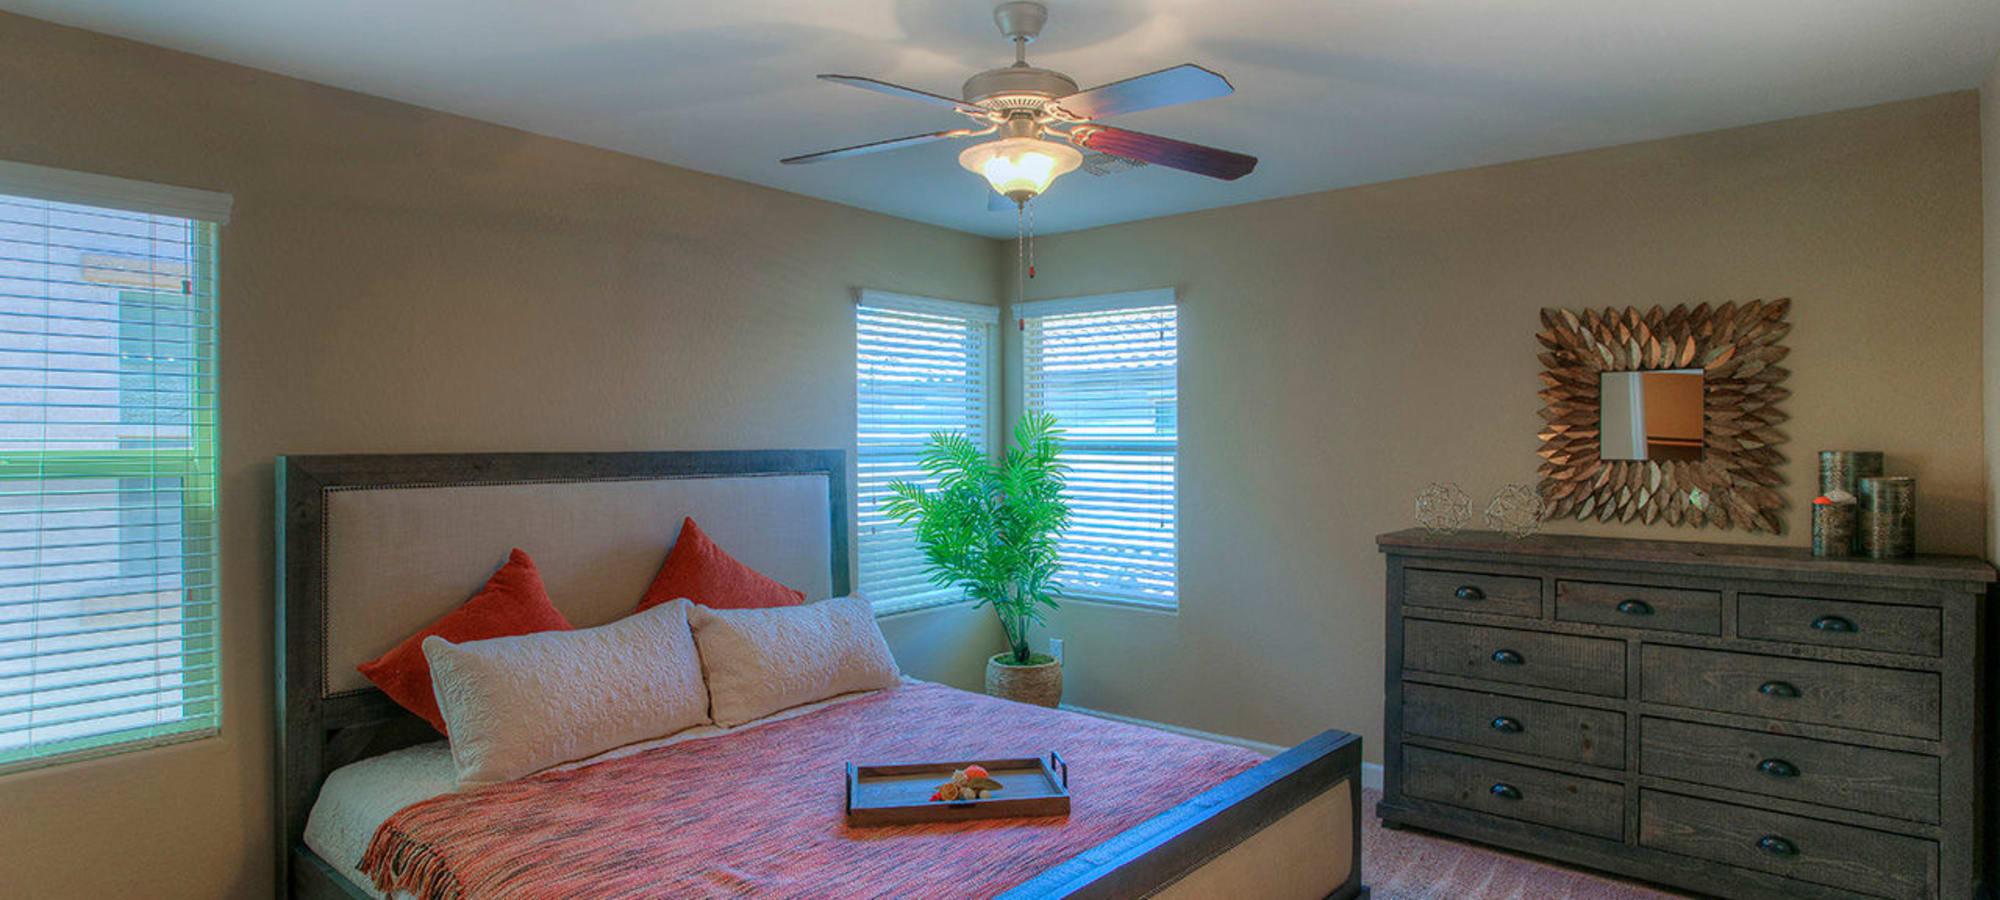 Model master bedroom with ceiling fans at BB Living at Higley Park in Gilbert, Arizona